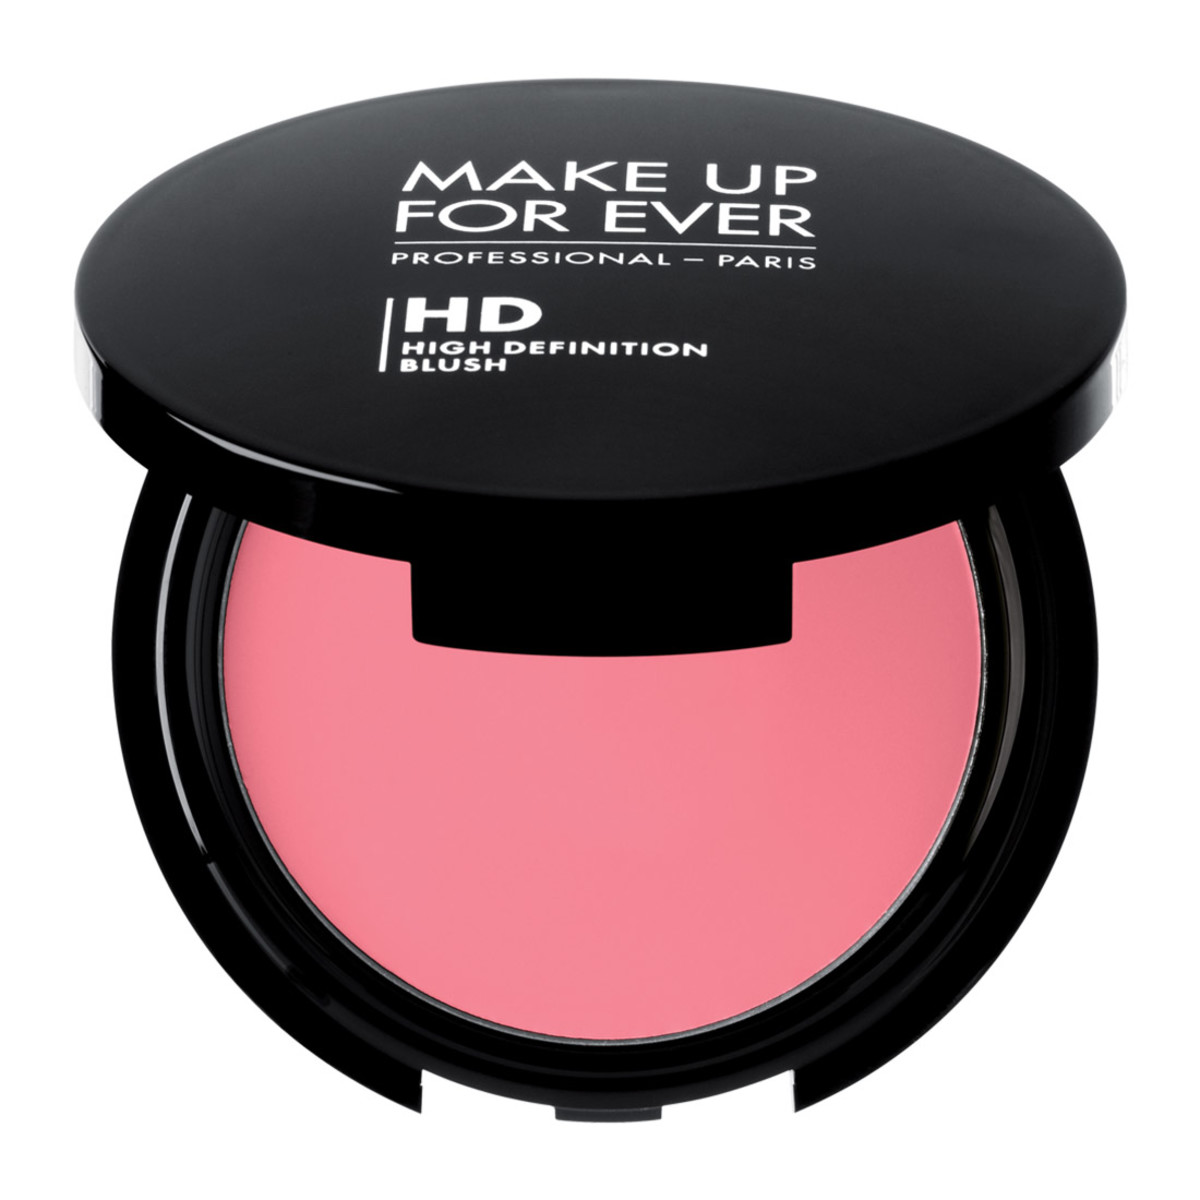 Make Up For Ever HD Blush in 210 Cool Pink